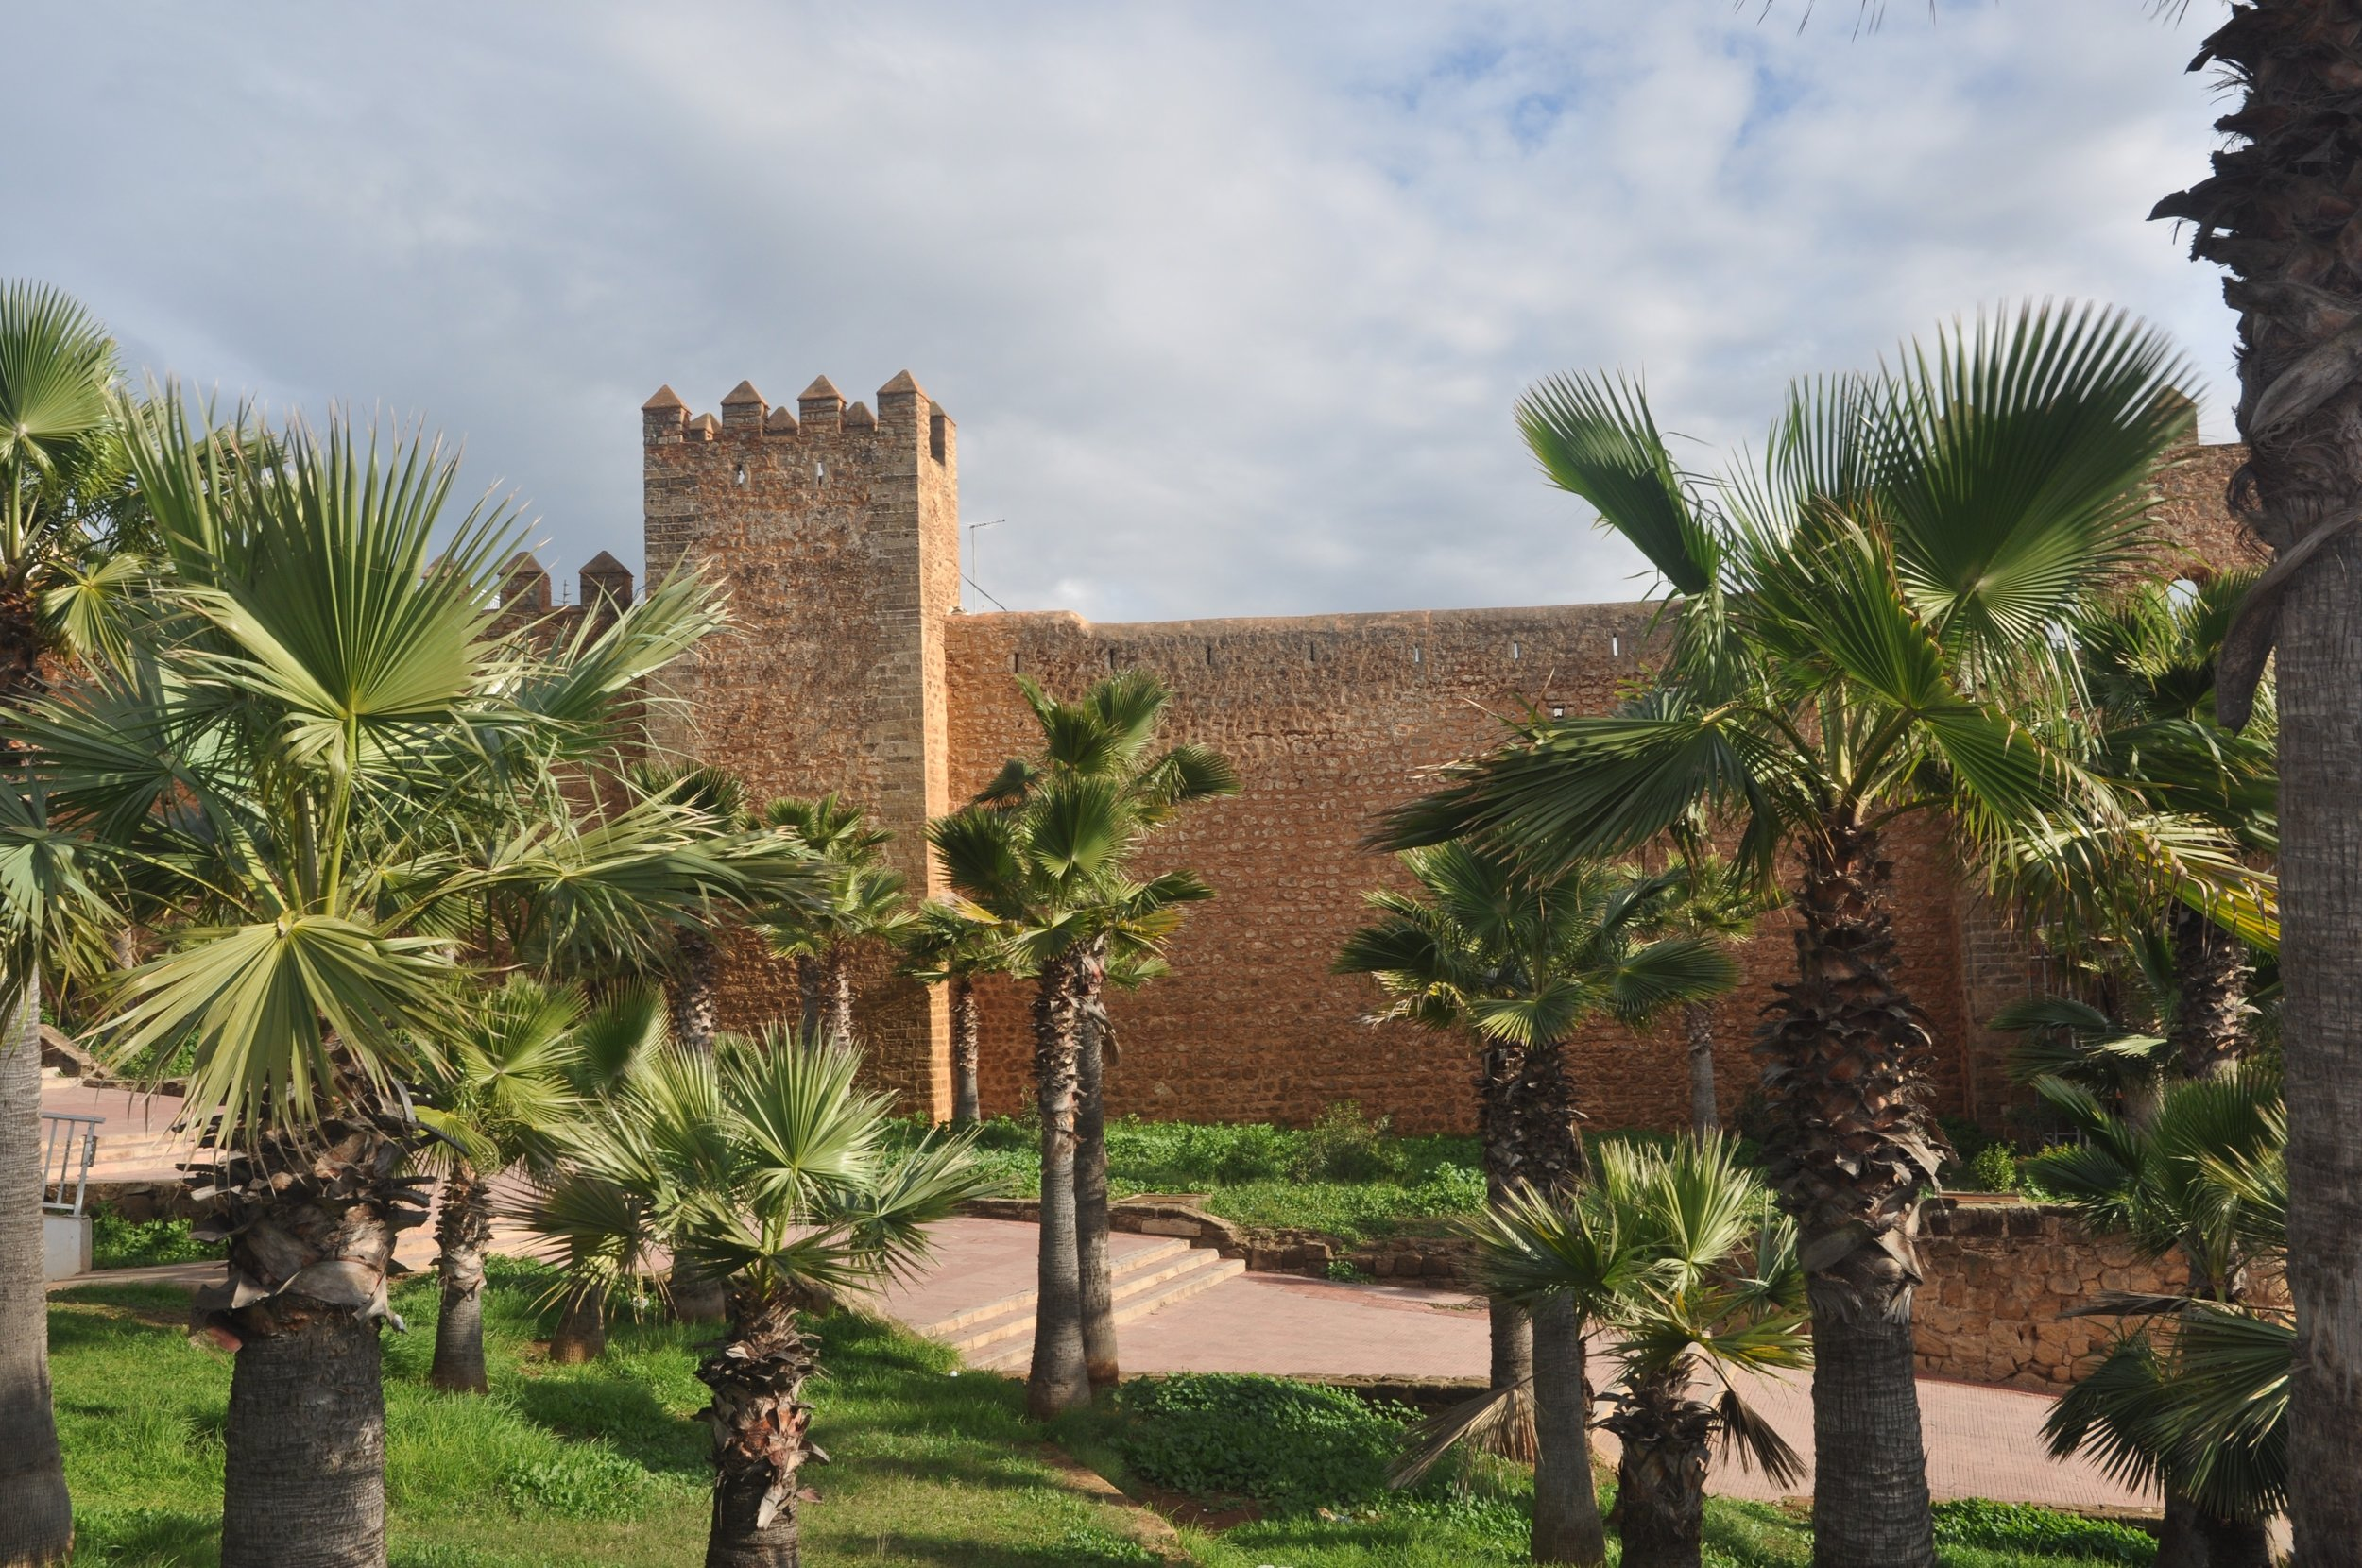 The Kasbah des Oudaias (seen from the outside) was built in the 12th c. by the Almohad caliphate which controlled southern Spain as well.